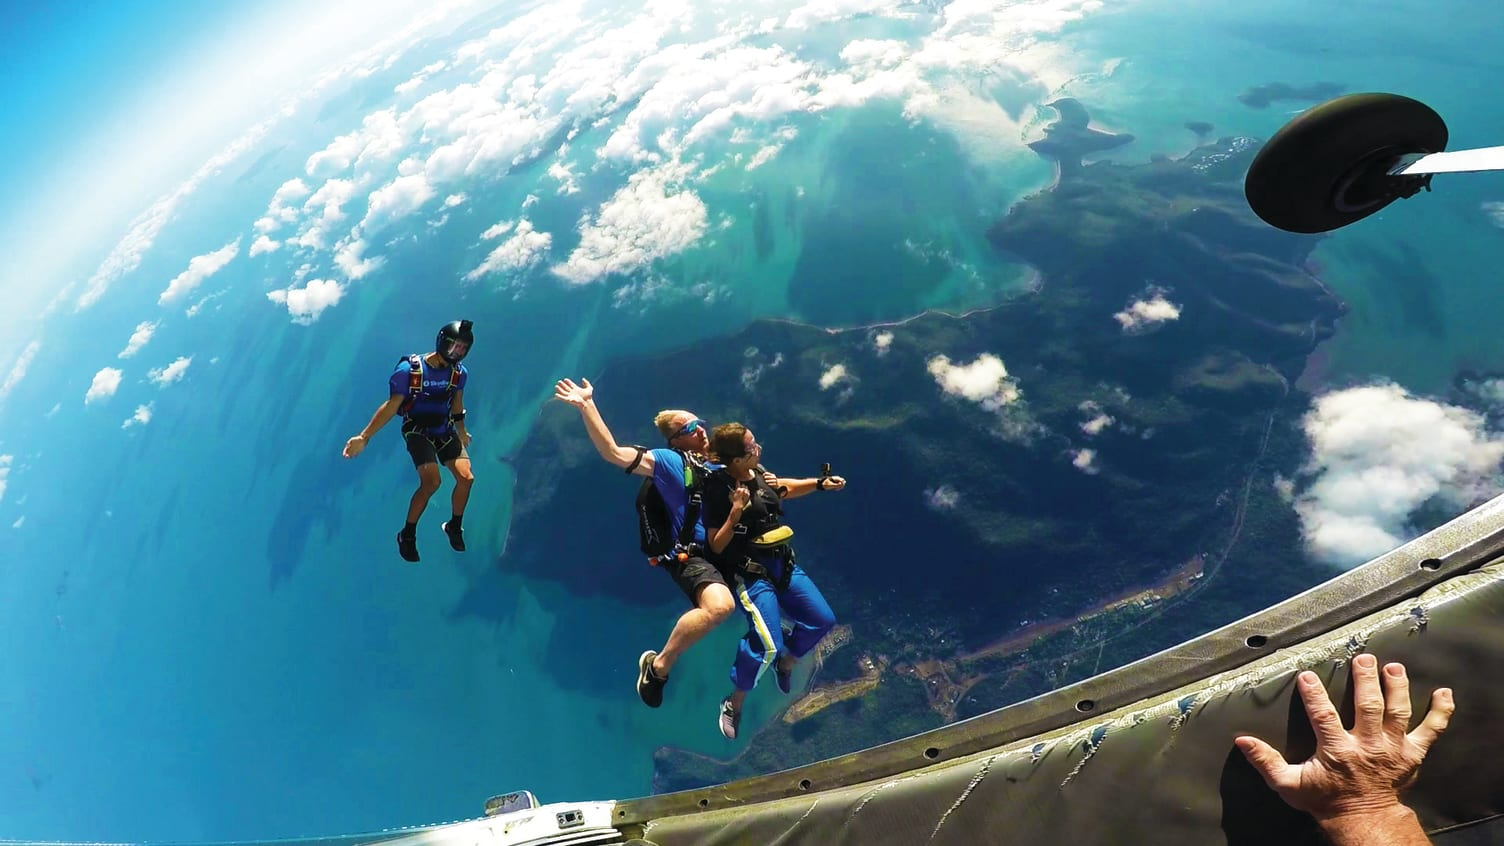 Tandem Skydive over Whitehaven Beach, Up To 15,000ft - Whitsundays